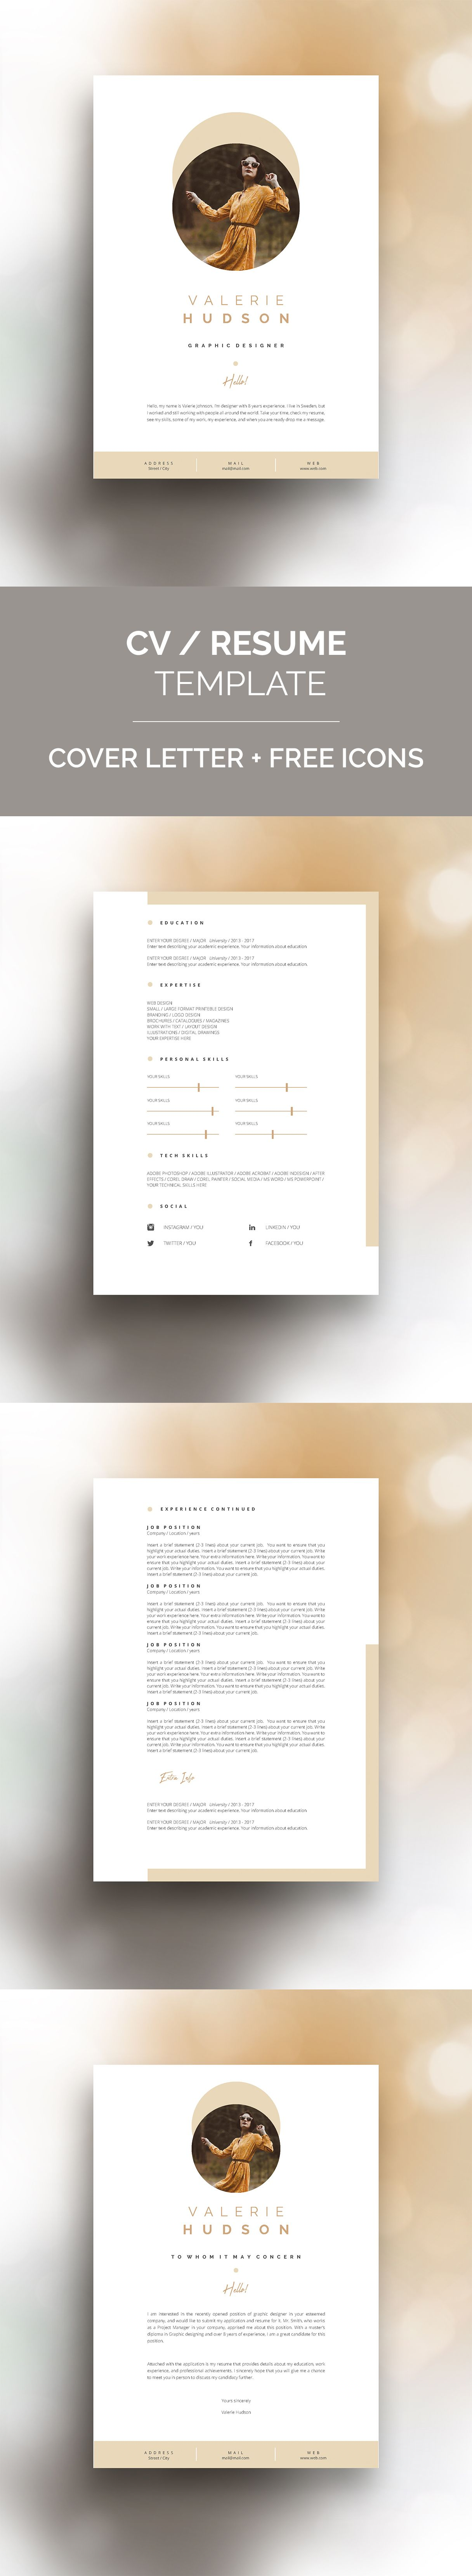 Cv Resume Template For Ms Word Minimal Graphic Design Resume Template Resume Design Template